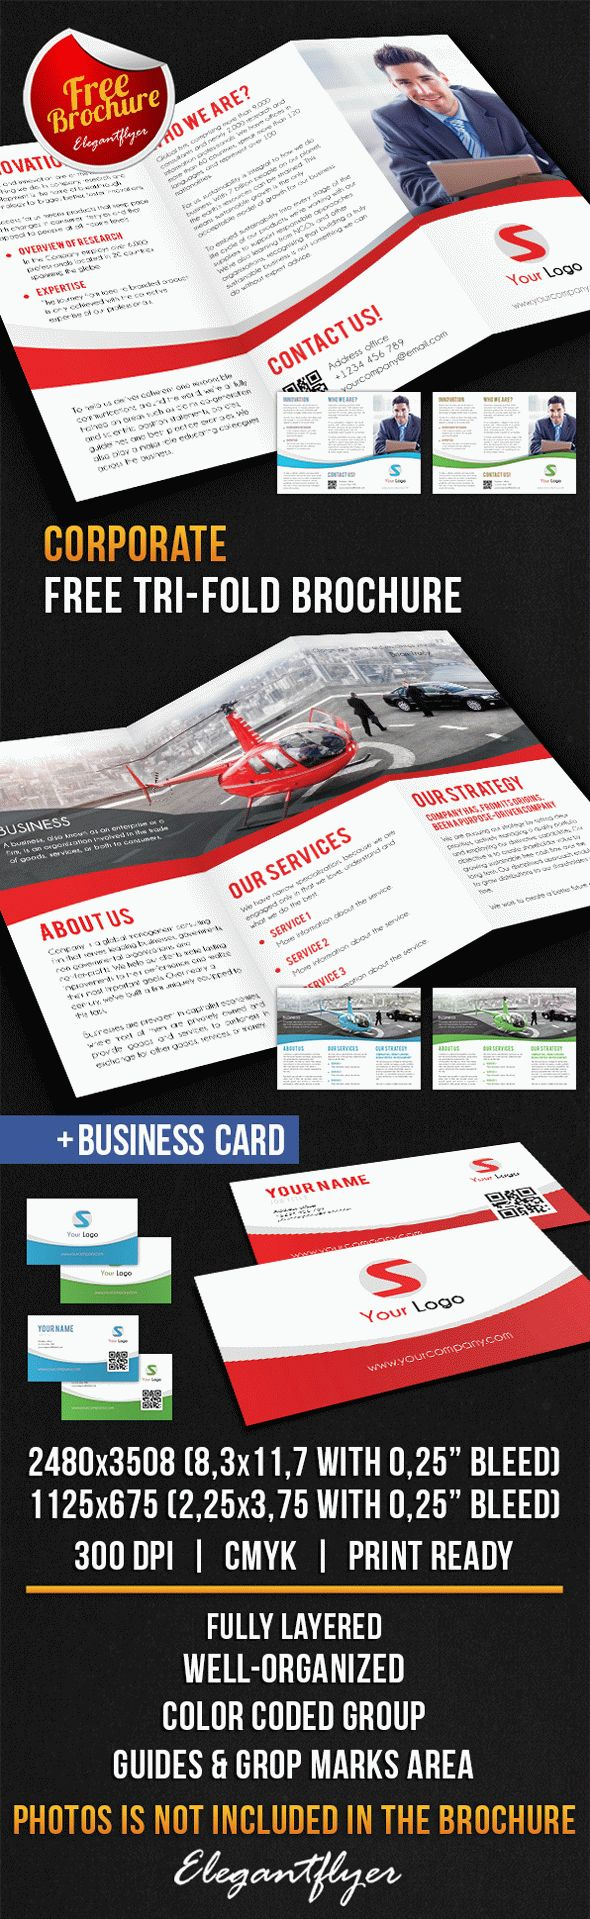 free online tri fold brochure template - corporate tri fold brochure free psd template by